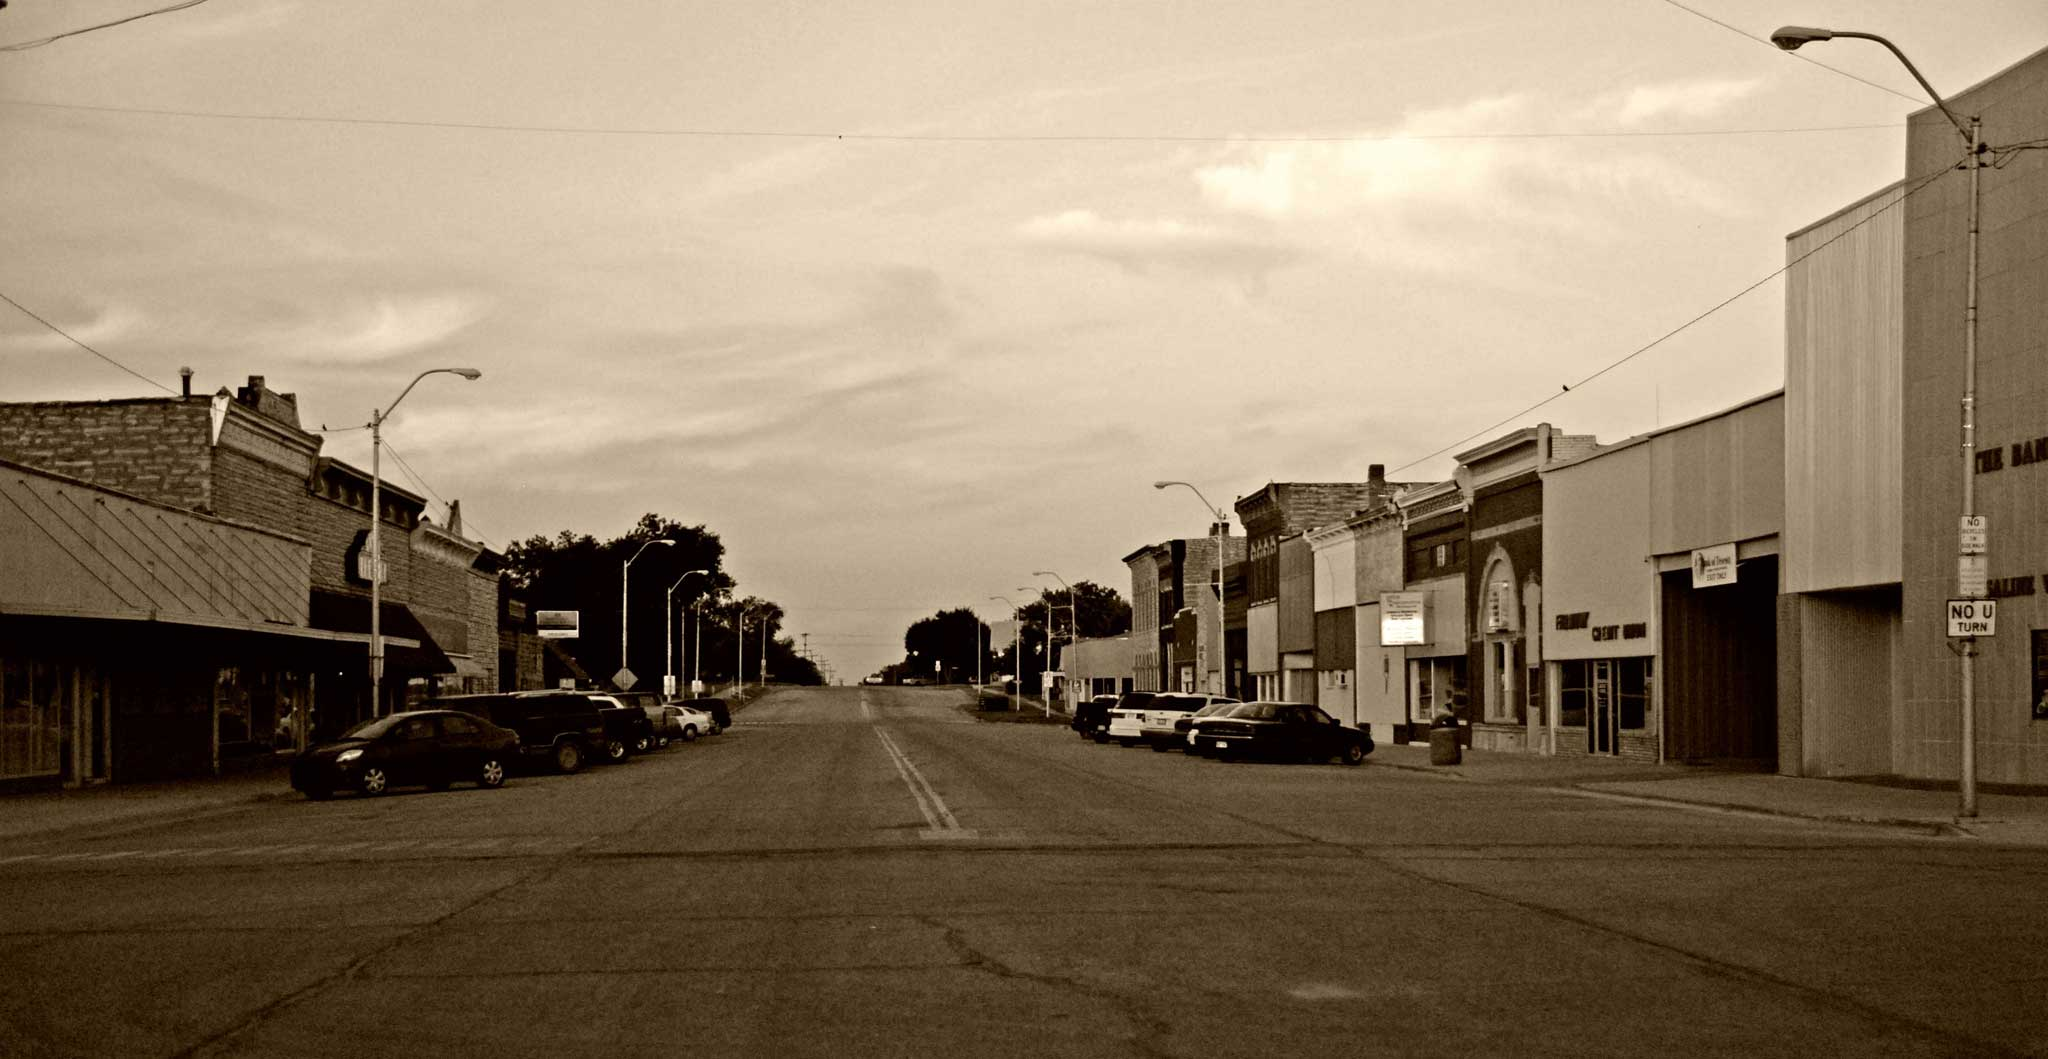 Main Street of a small US town